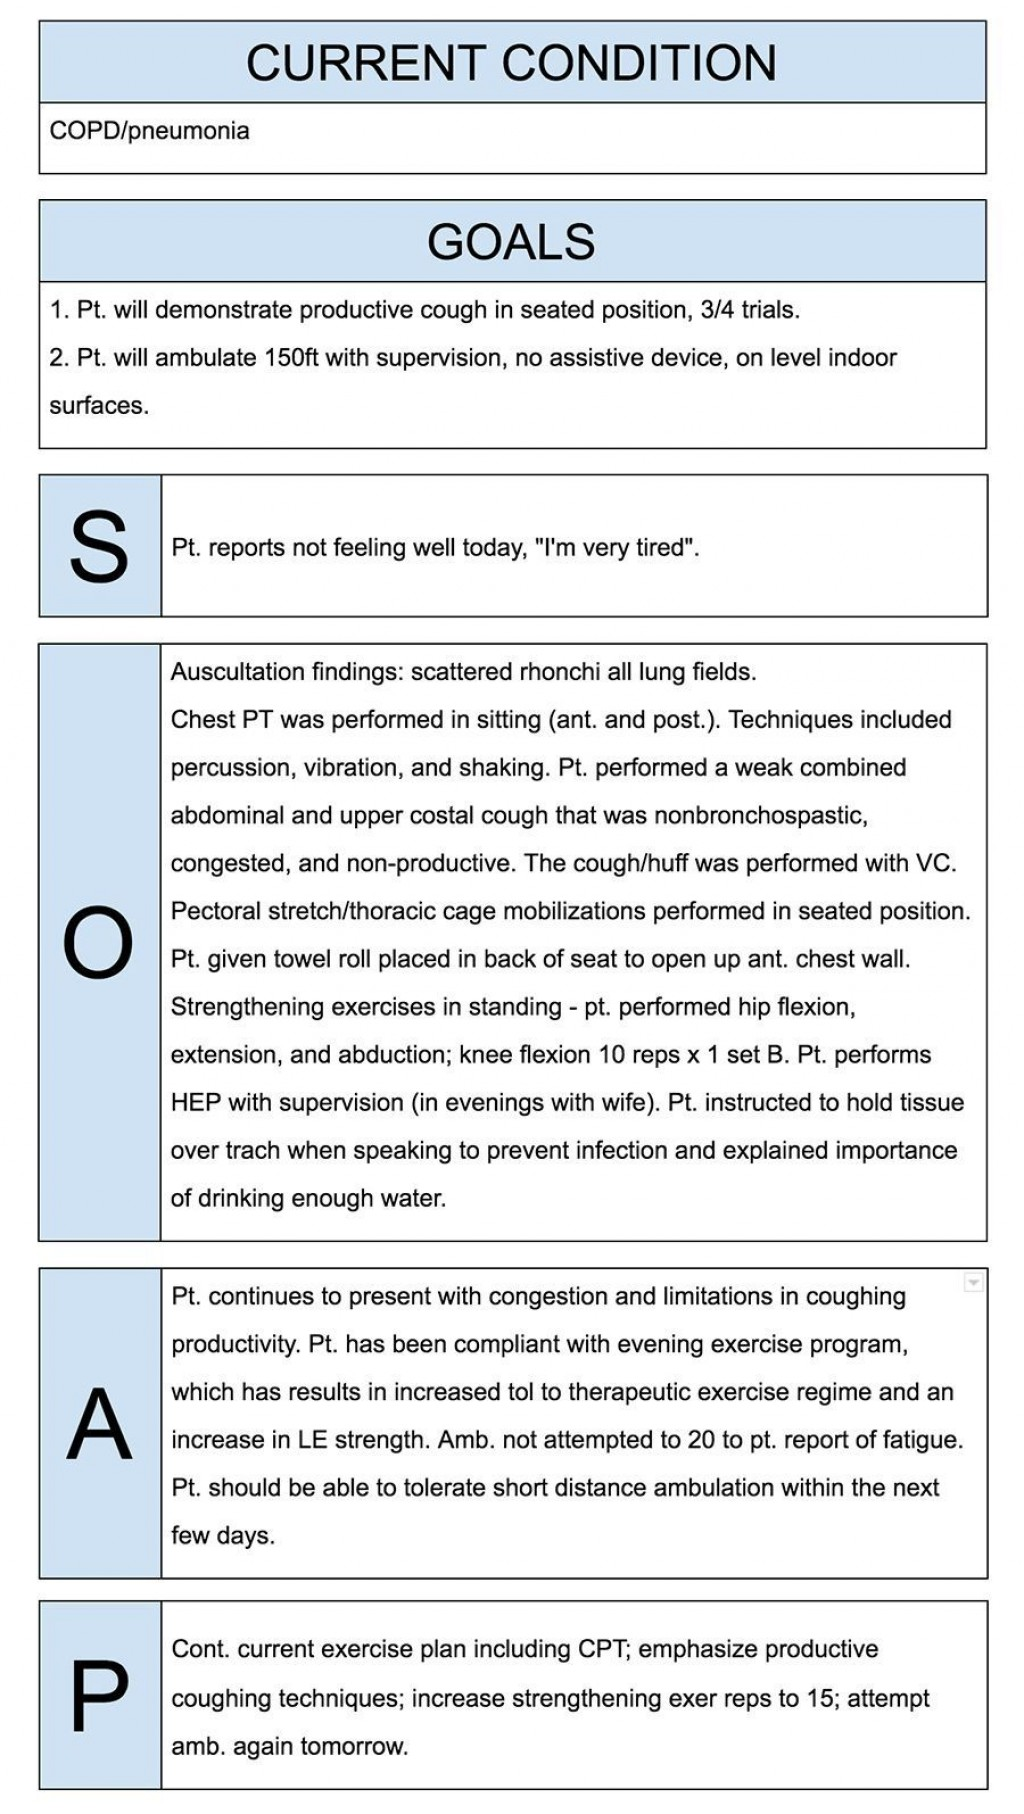 003 Unforgettable Soap Note Template Pdf Image  Massage Free ChiropracticLarge